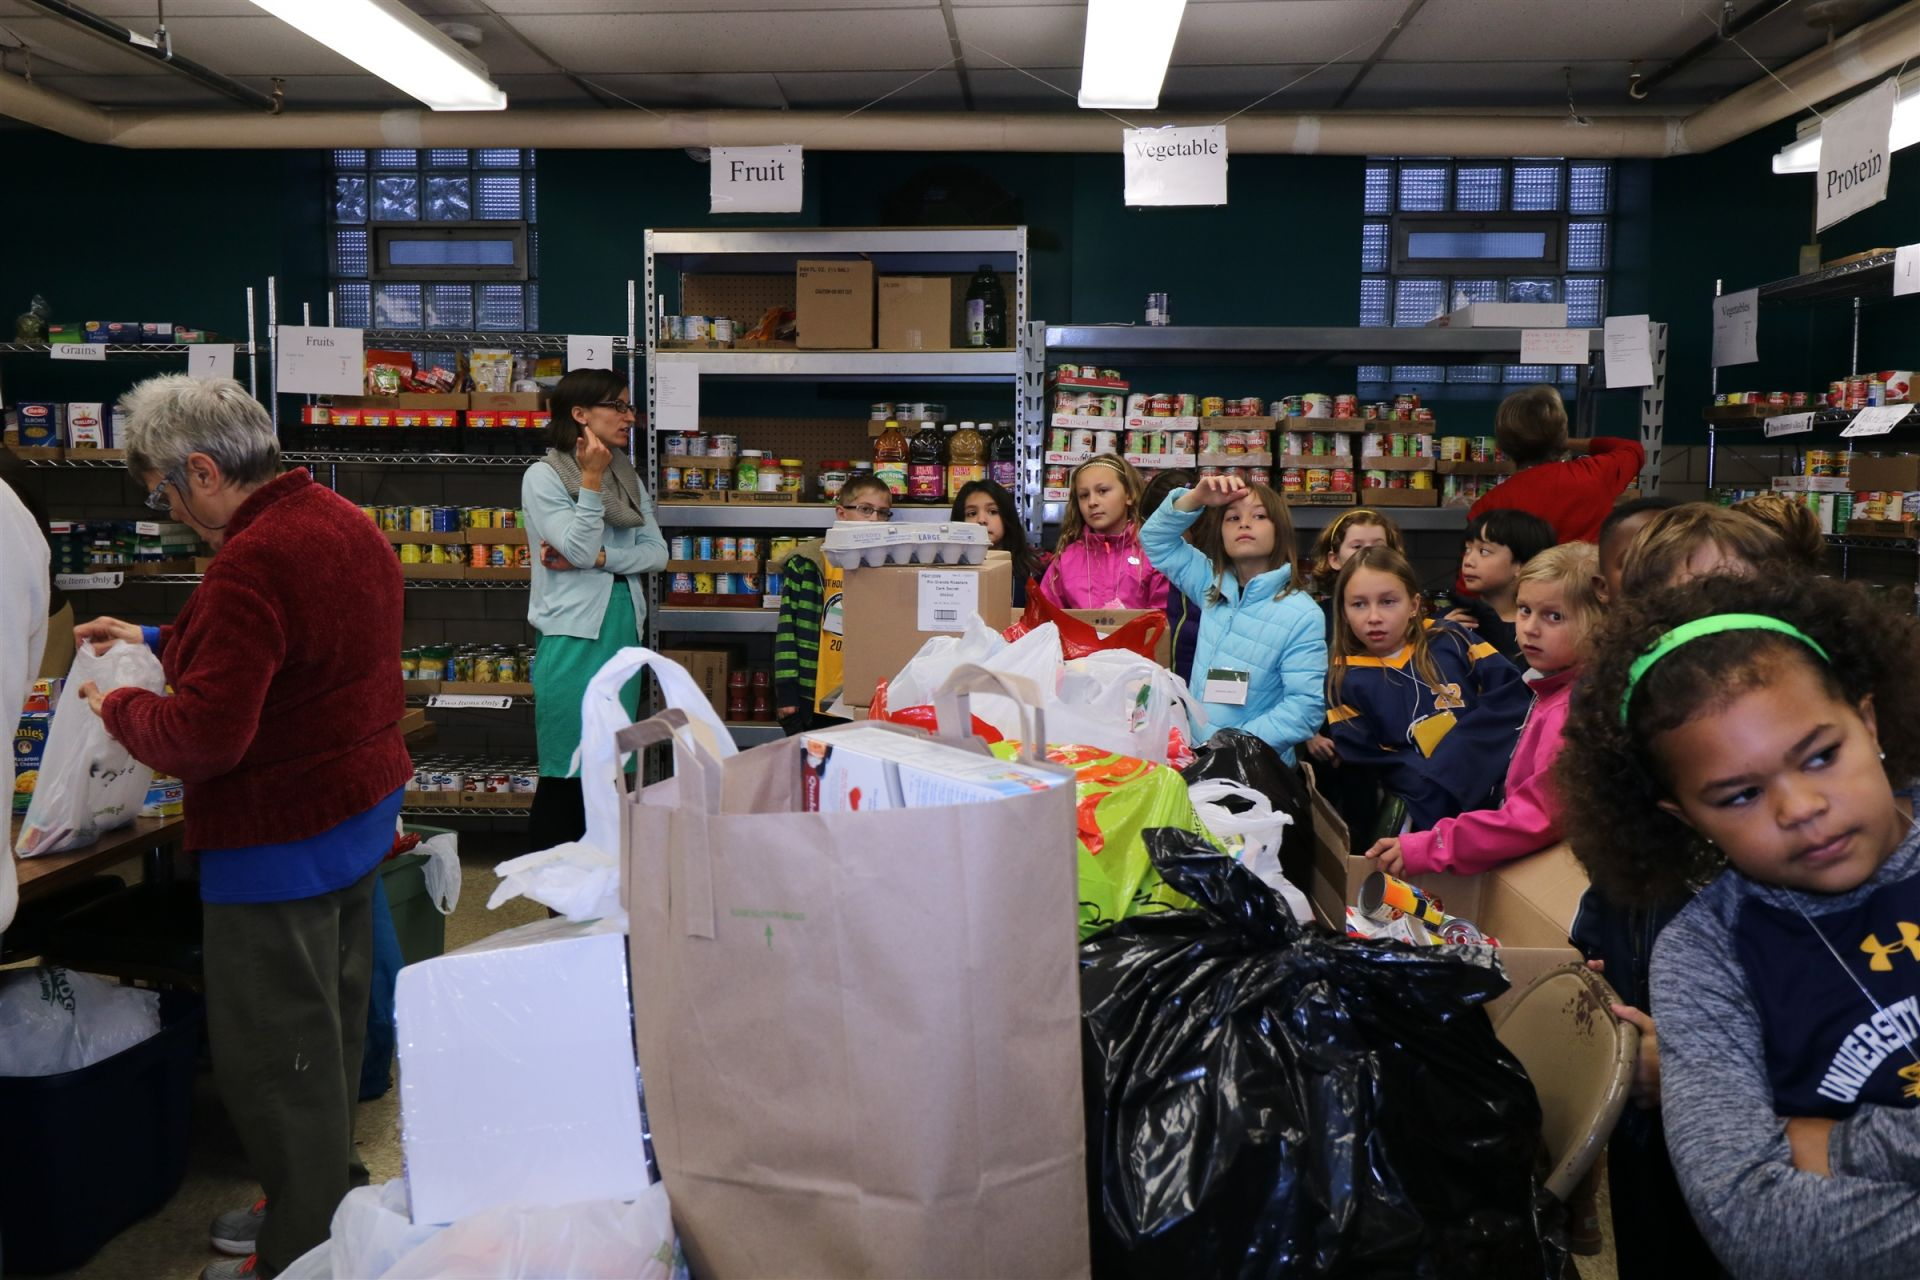 Students unpack bags of food at the Riverwest Food Pantry.